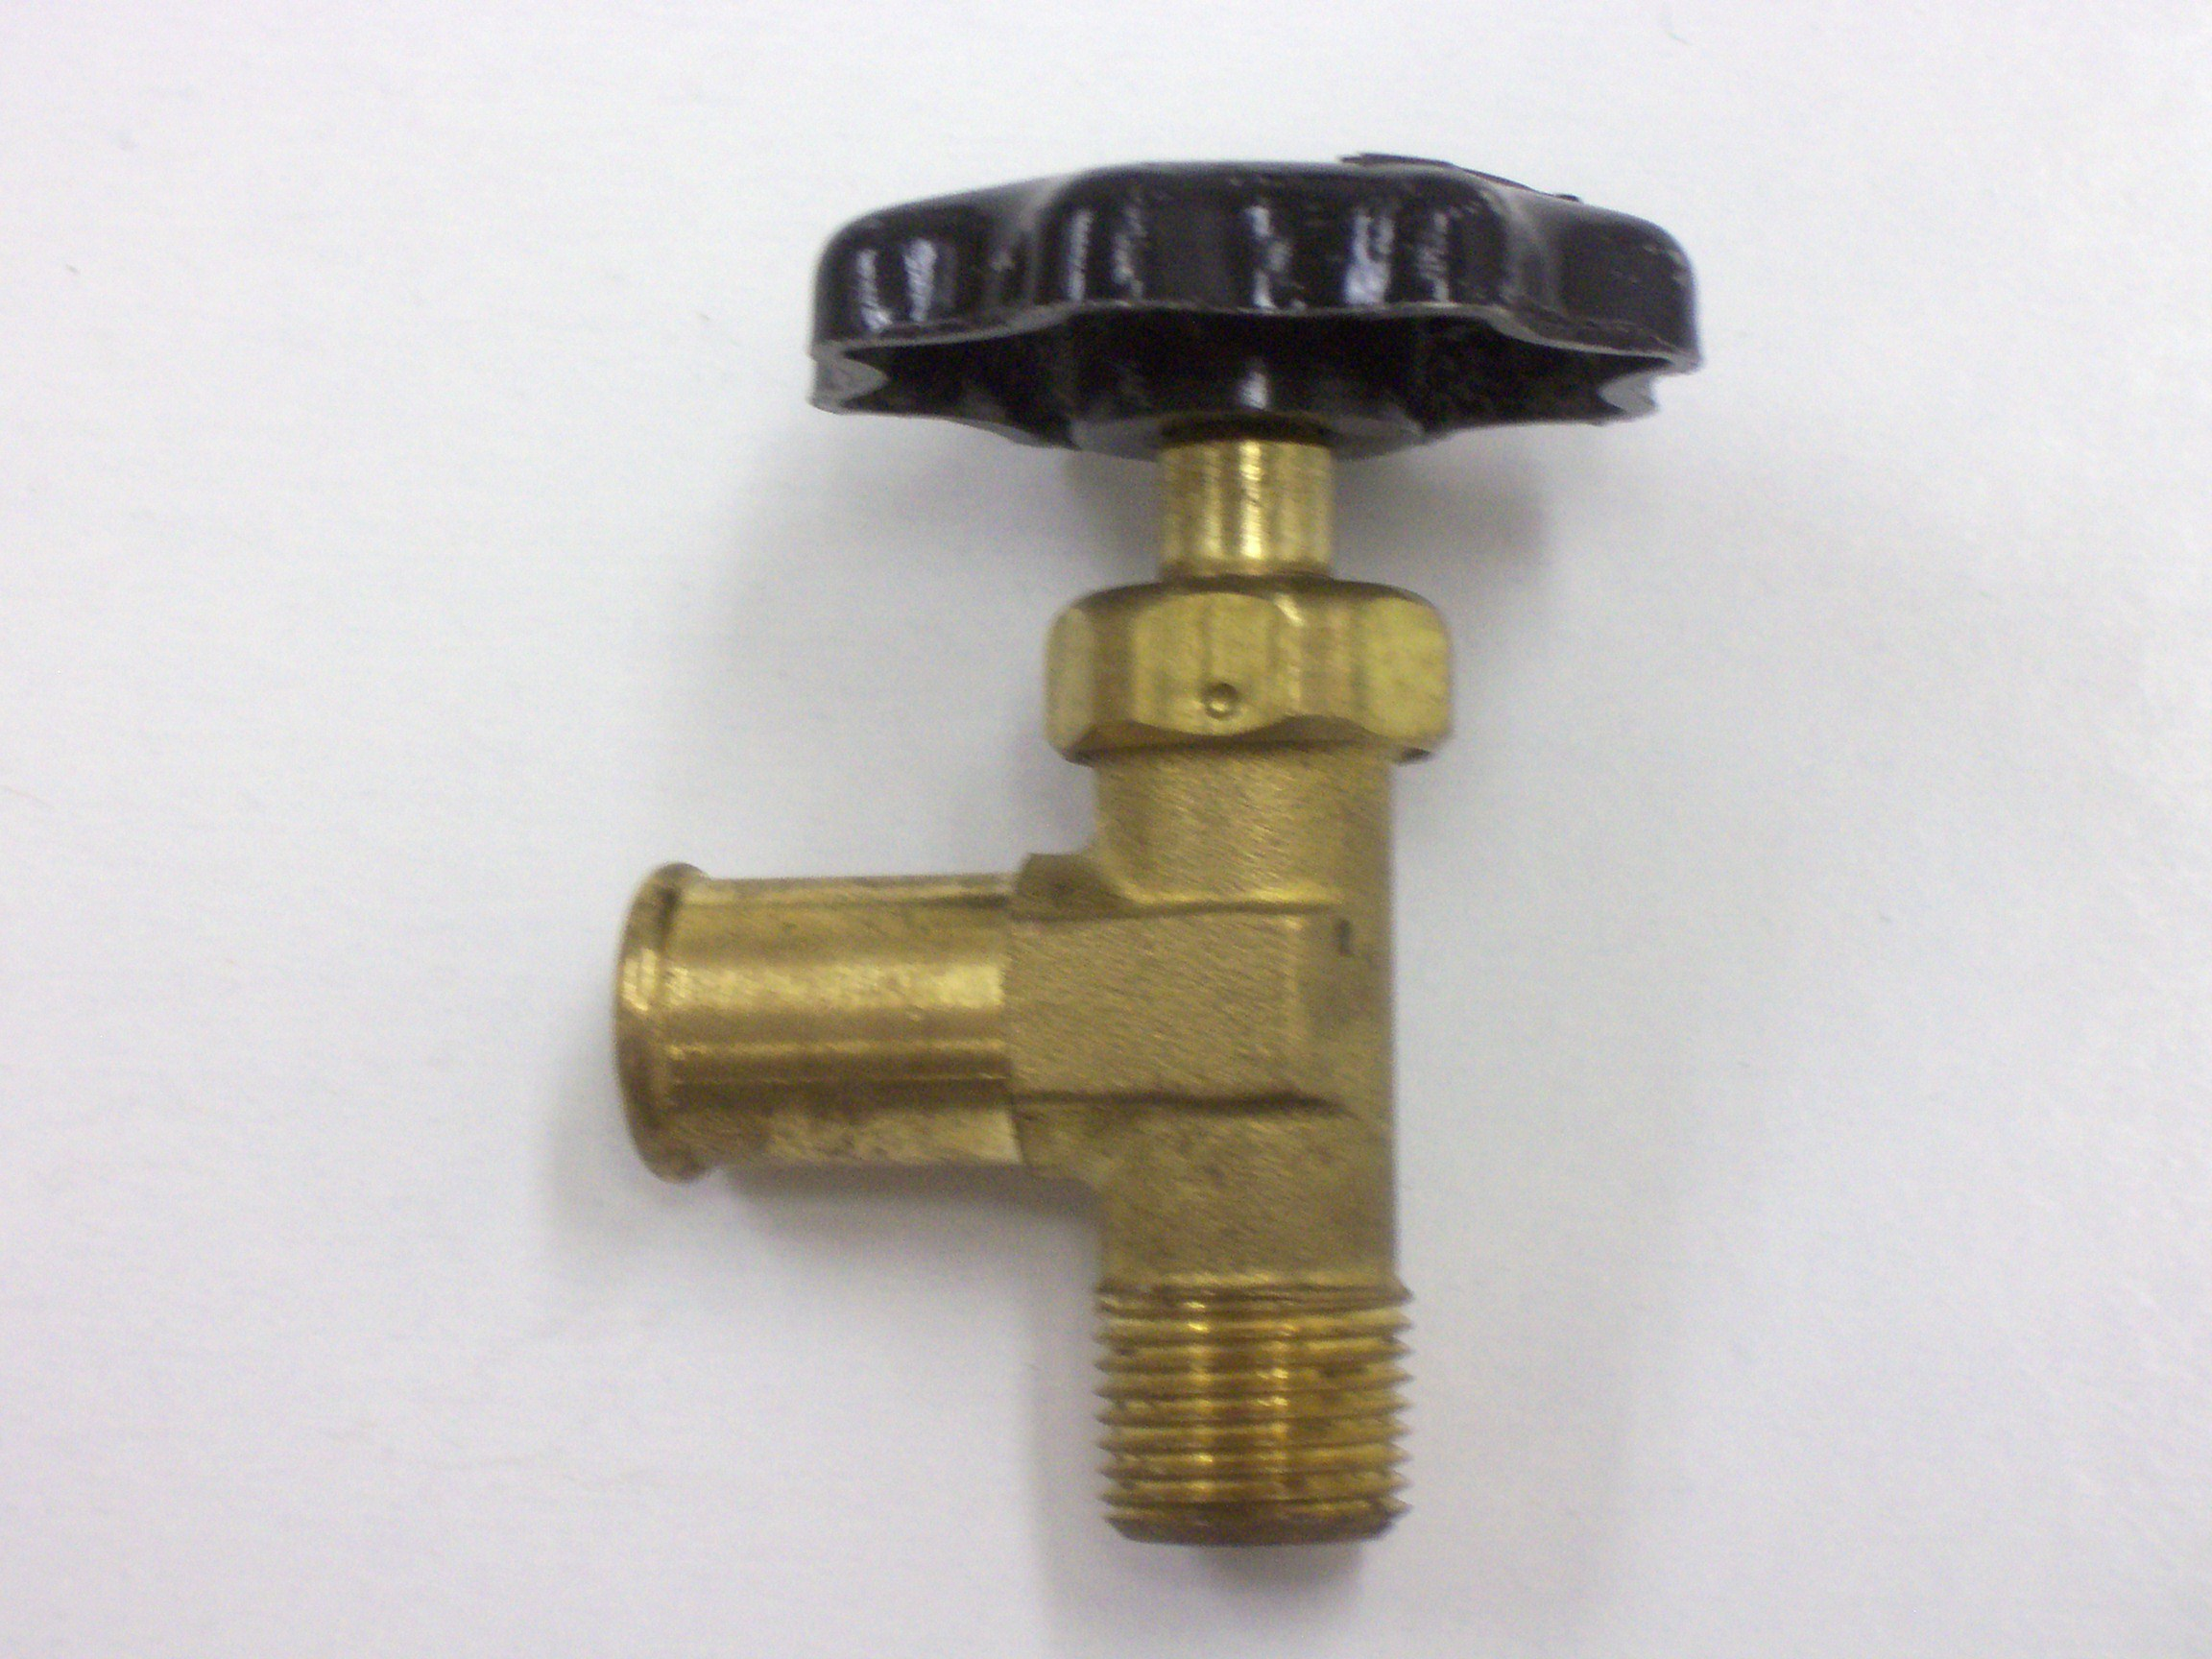 Rigmaster Part Number RP5-019